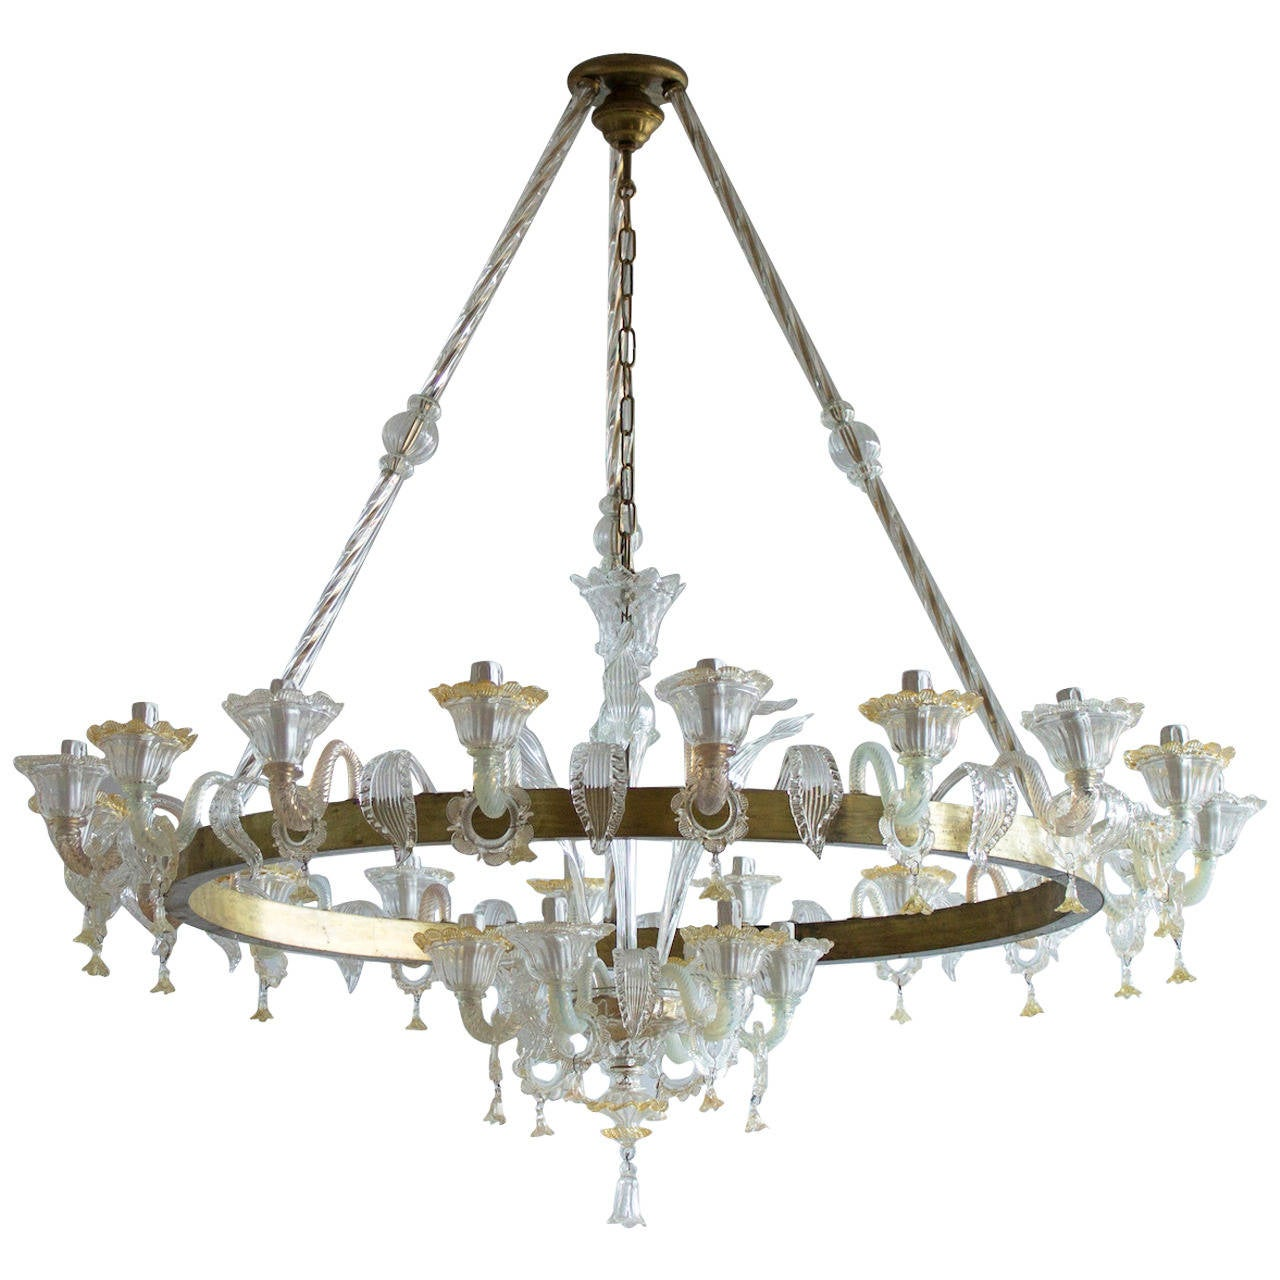 Italian mid century chandelier circa from 1950s for sale at 1stdibs - Circa lighting chandeliers ...